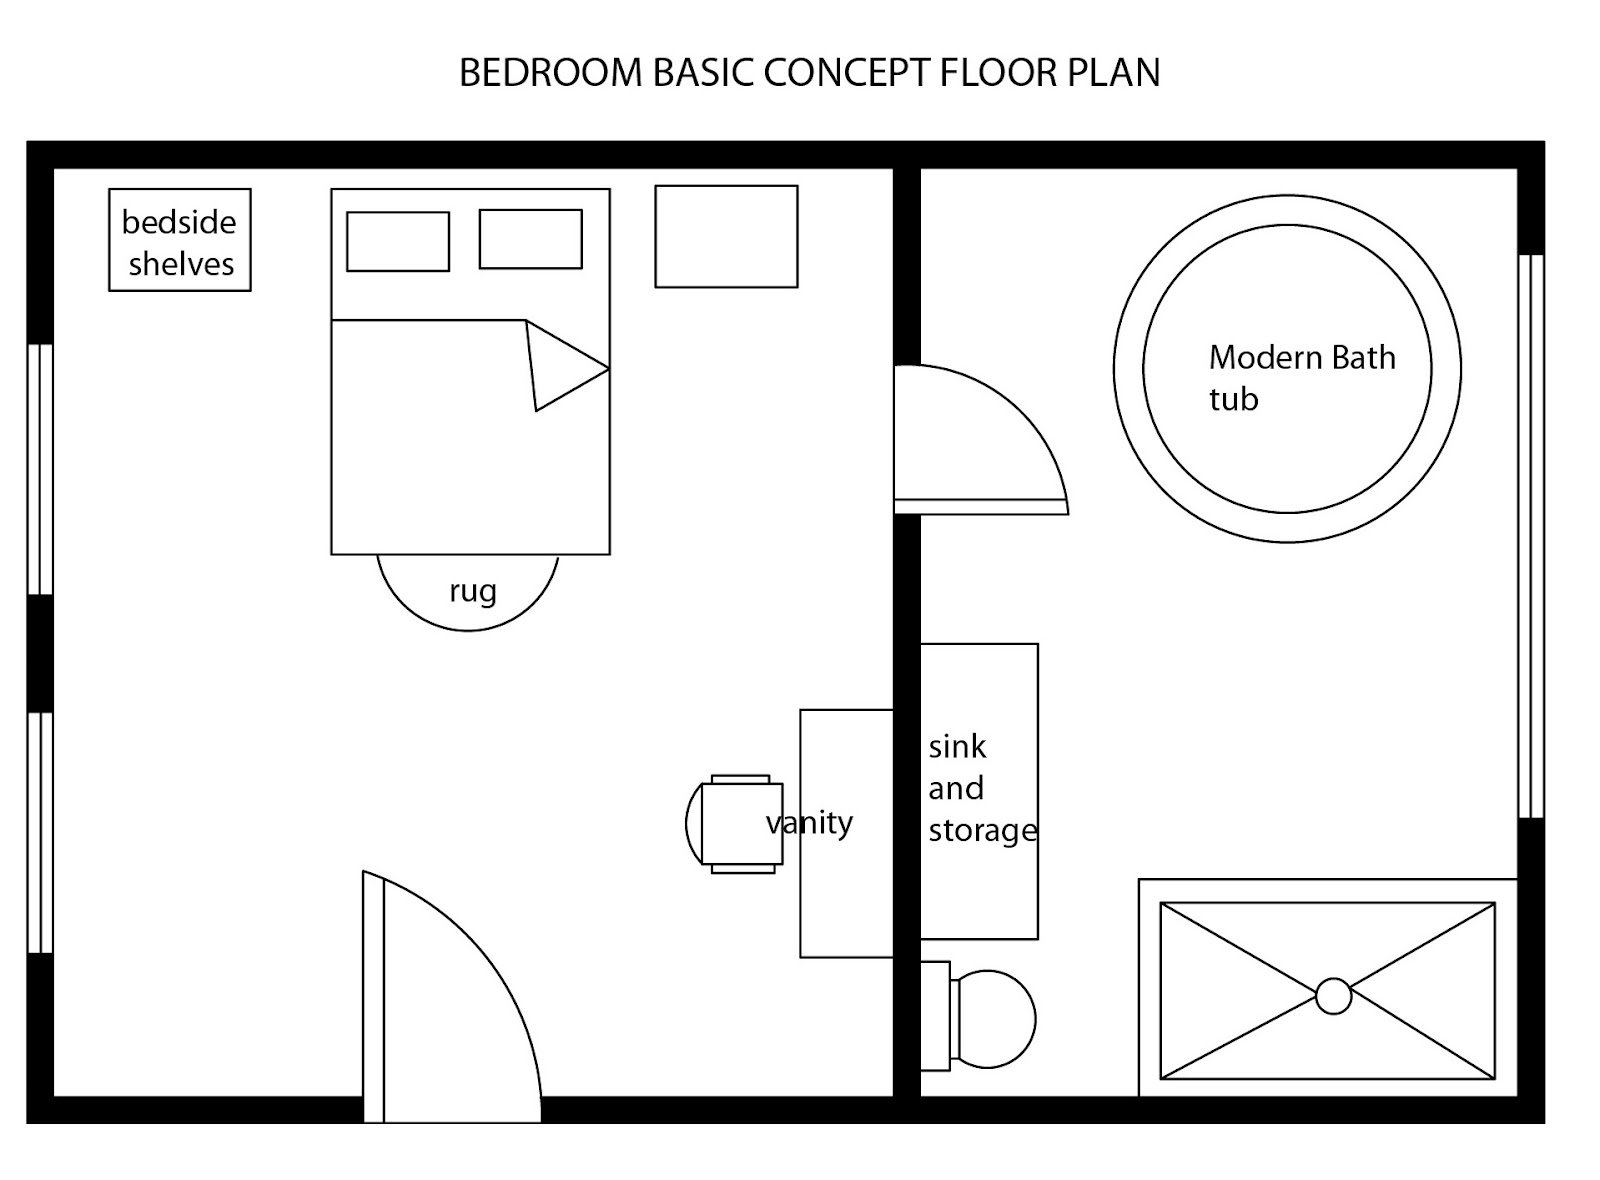 Best Interior Design Decor Modern Bedroom Basic Floor Plan With Pictures